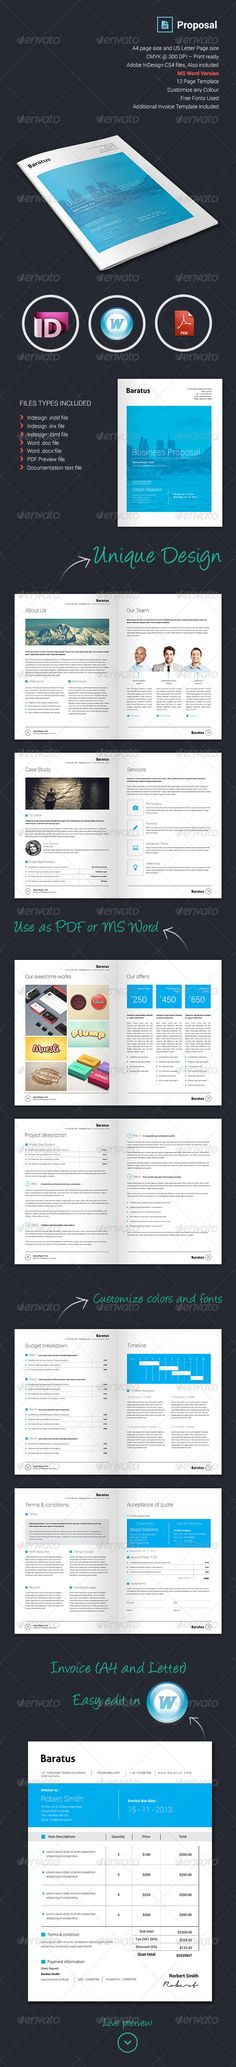 Proposal Template  Proposal Templates Proposals And Brochures